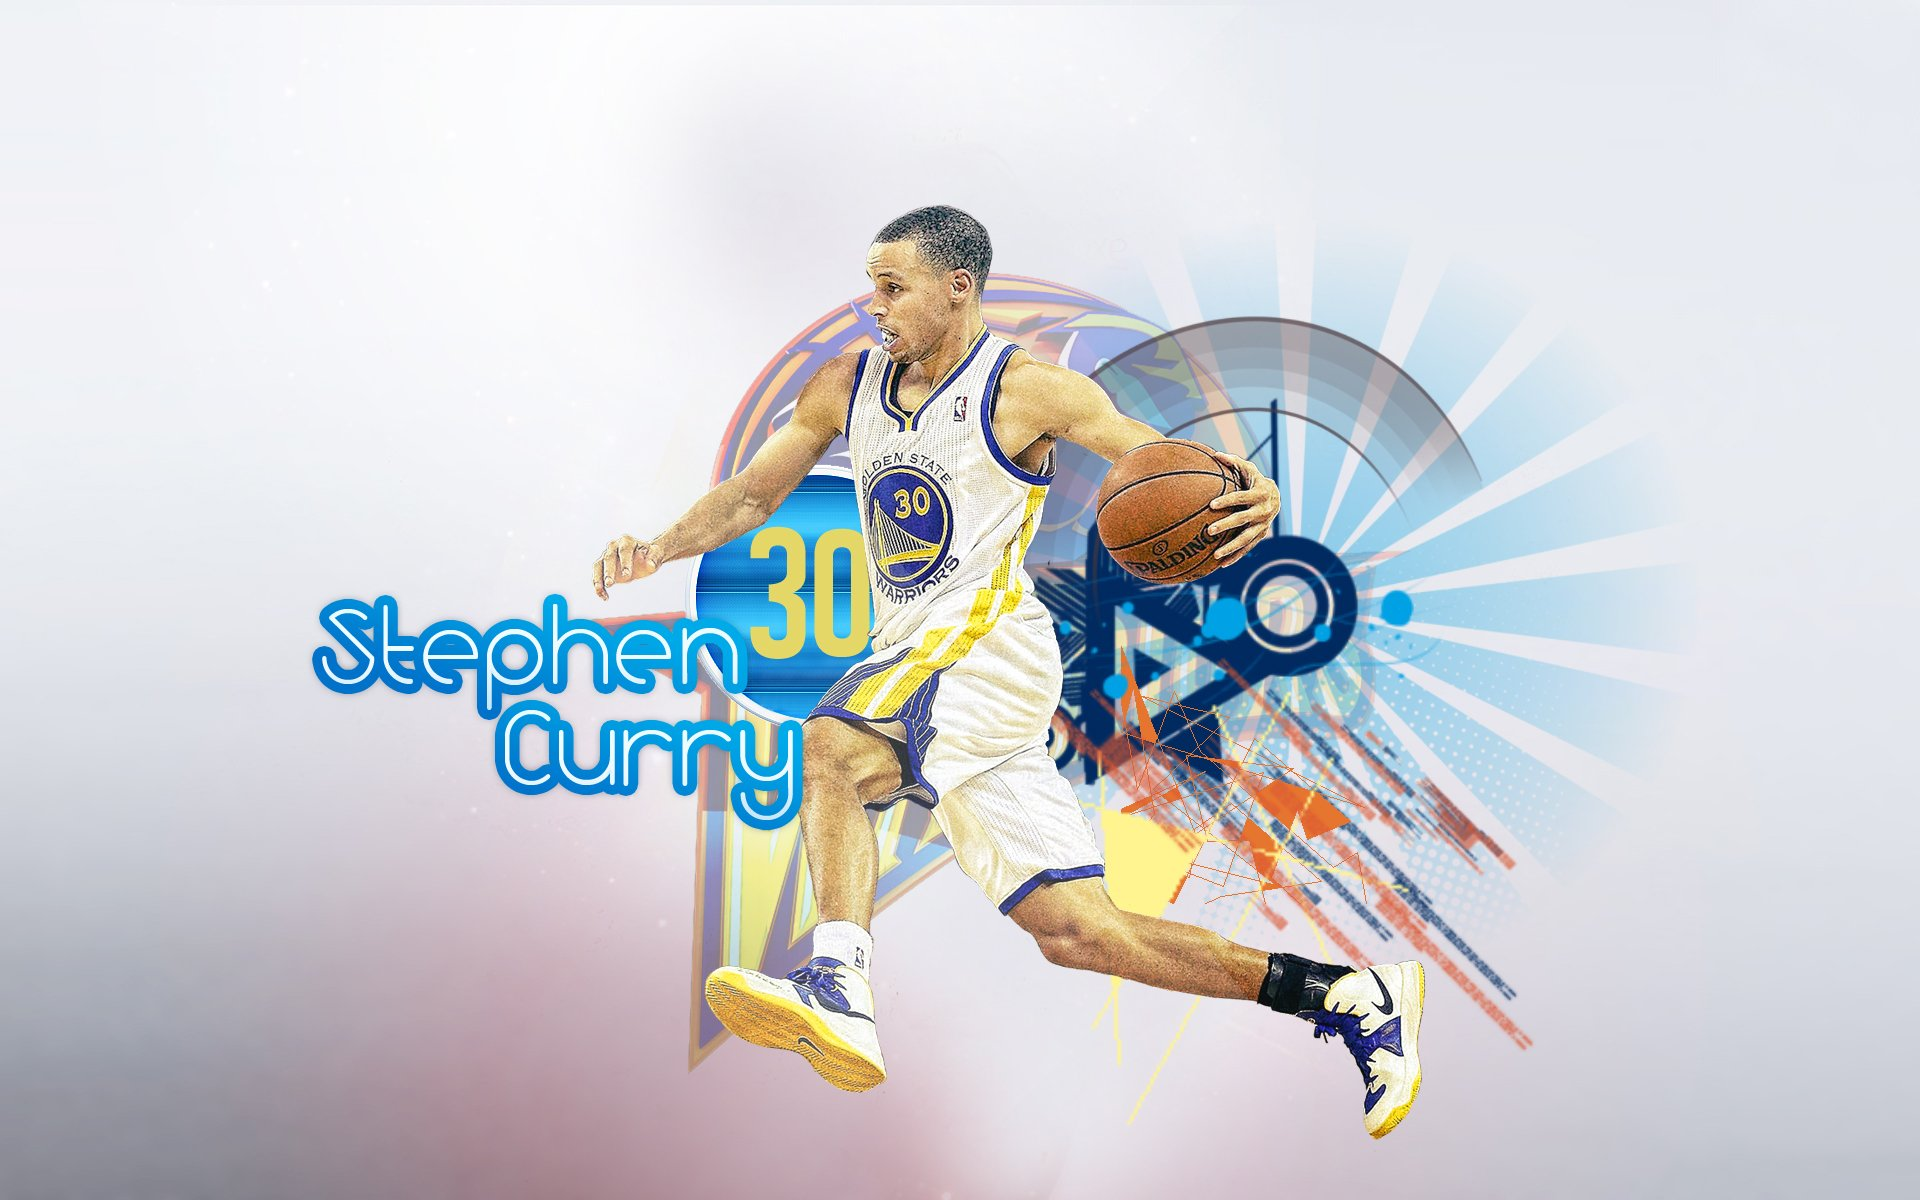 stephen curry 30 wallpaper by 31andonly customization wallpaper hdtv 1920x1200